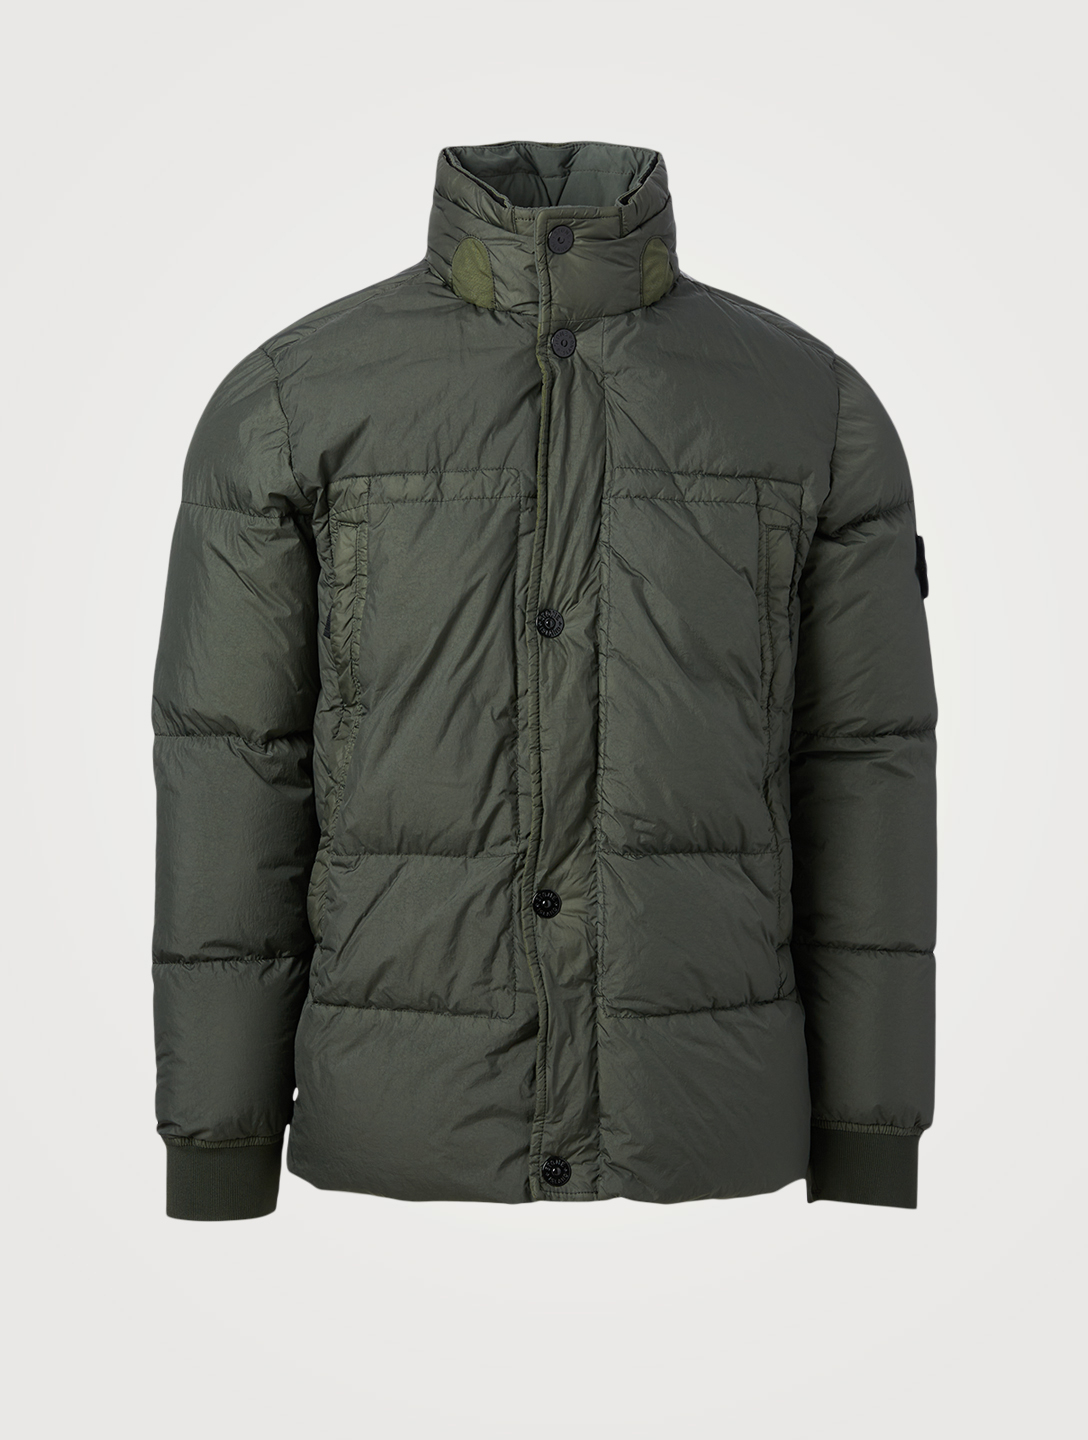 STONE ISLAND Garment Dyed Crinkle Down Jacket Men's Green